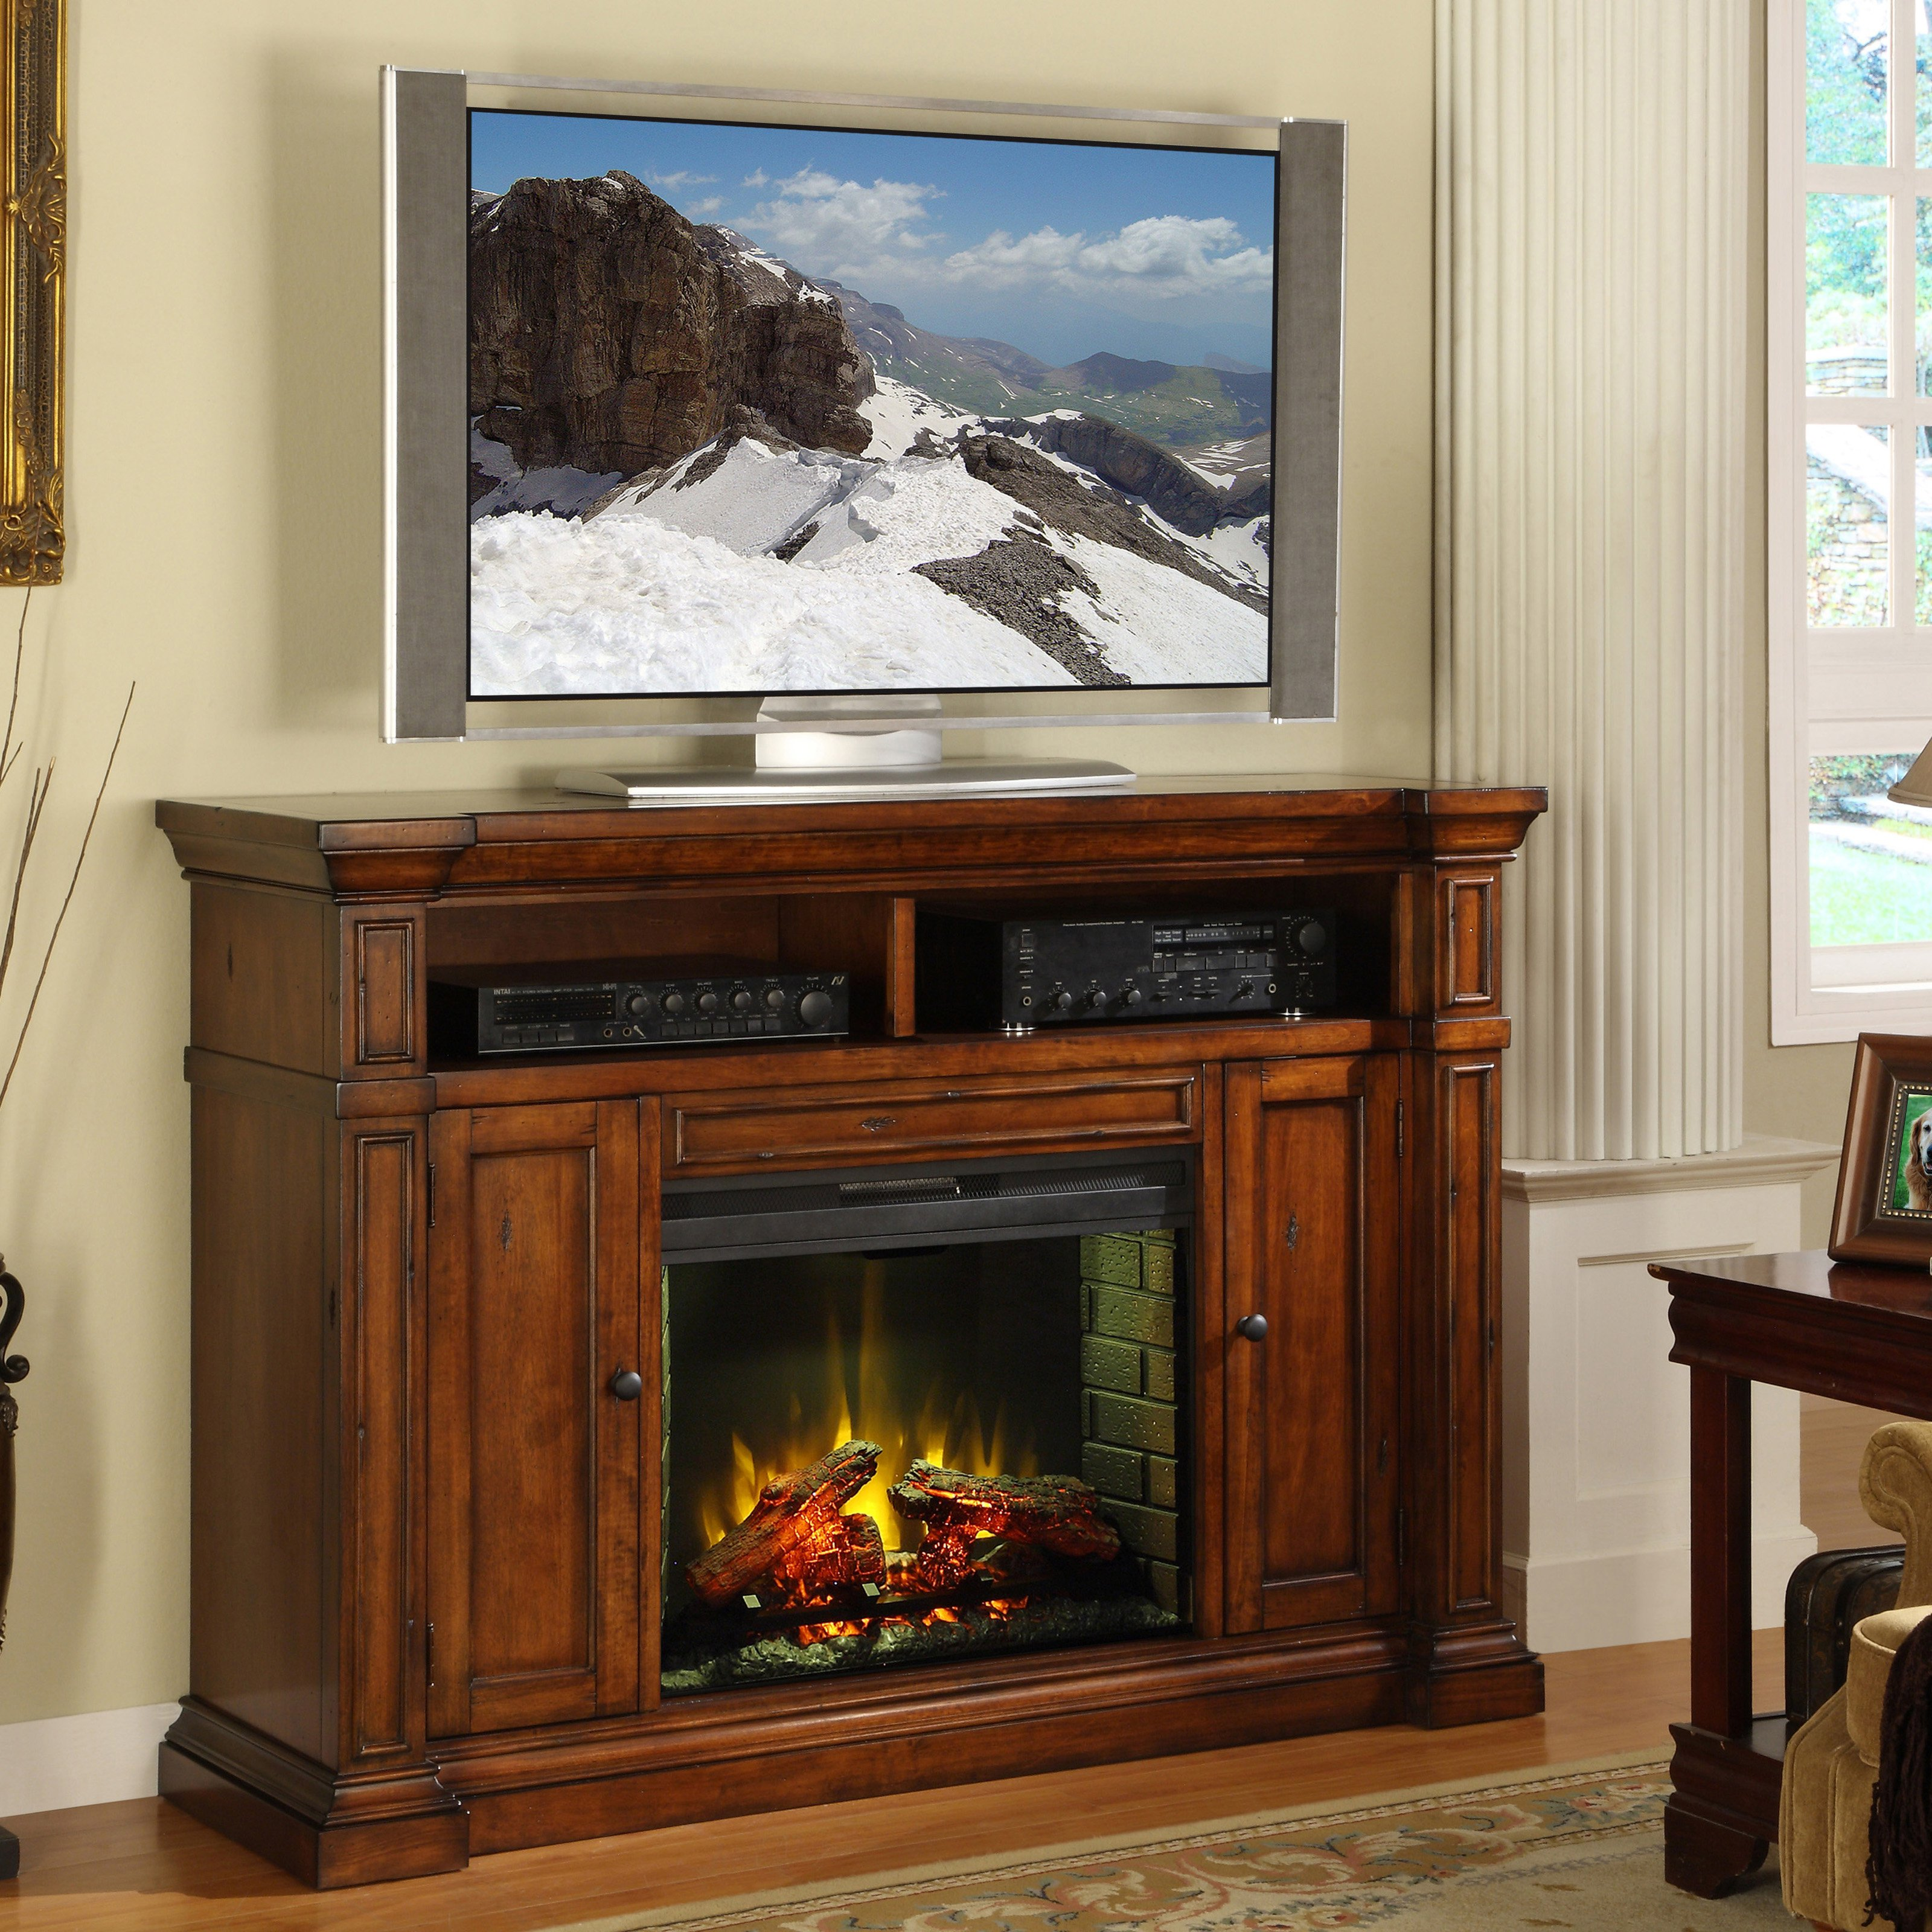 Legends Berkshire Fireplace Media center - Old World Umber